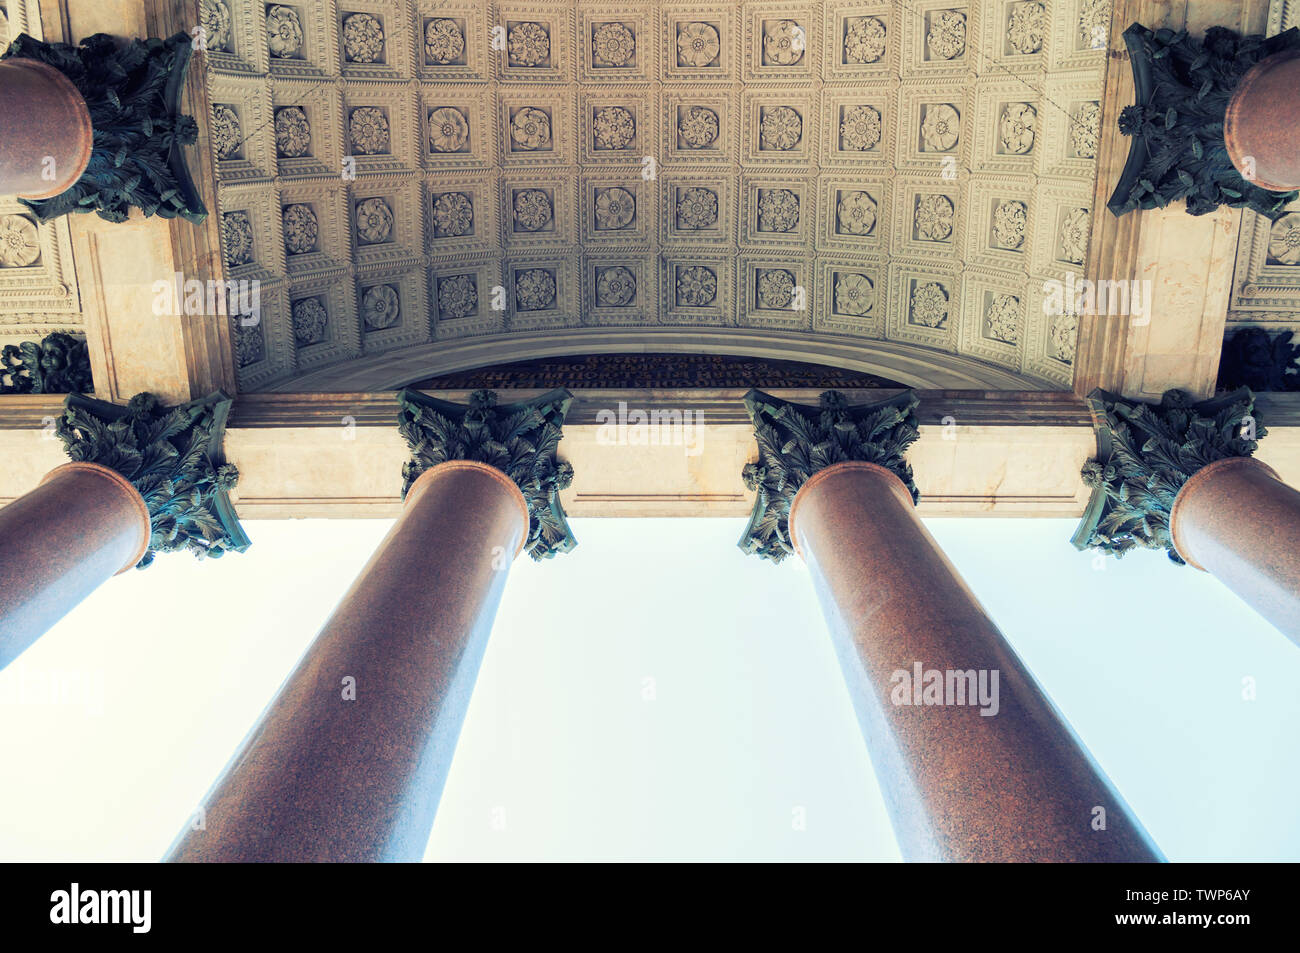 Architecture background with columns under sunlight. St Isaac Cathedral colonnade in St Petersburg, Russia. Vintage filter applied - Stock Image